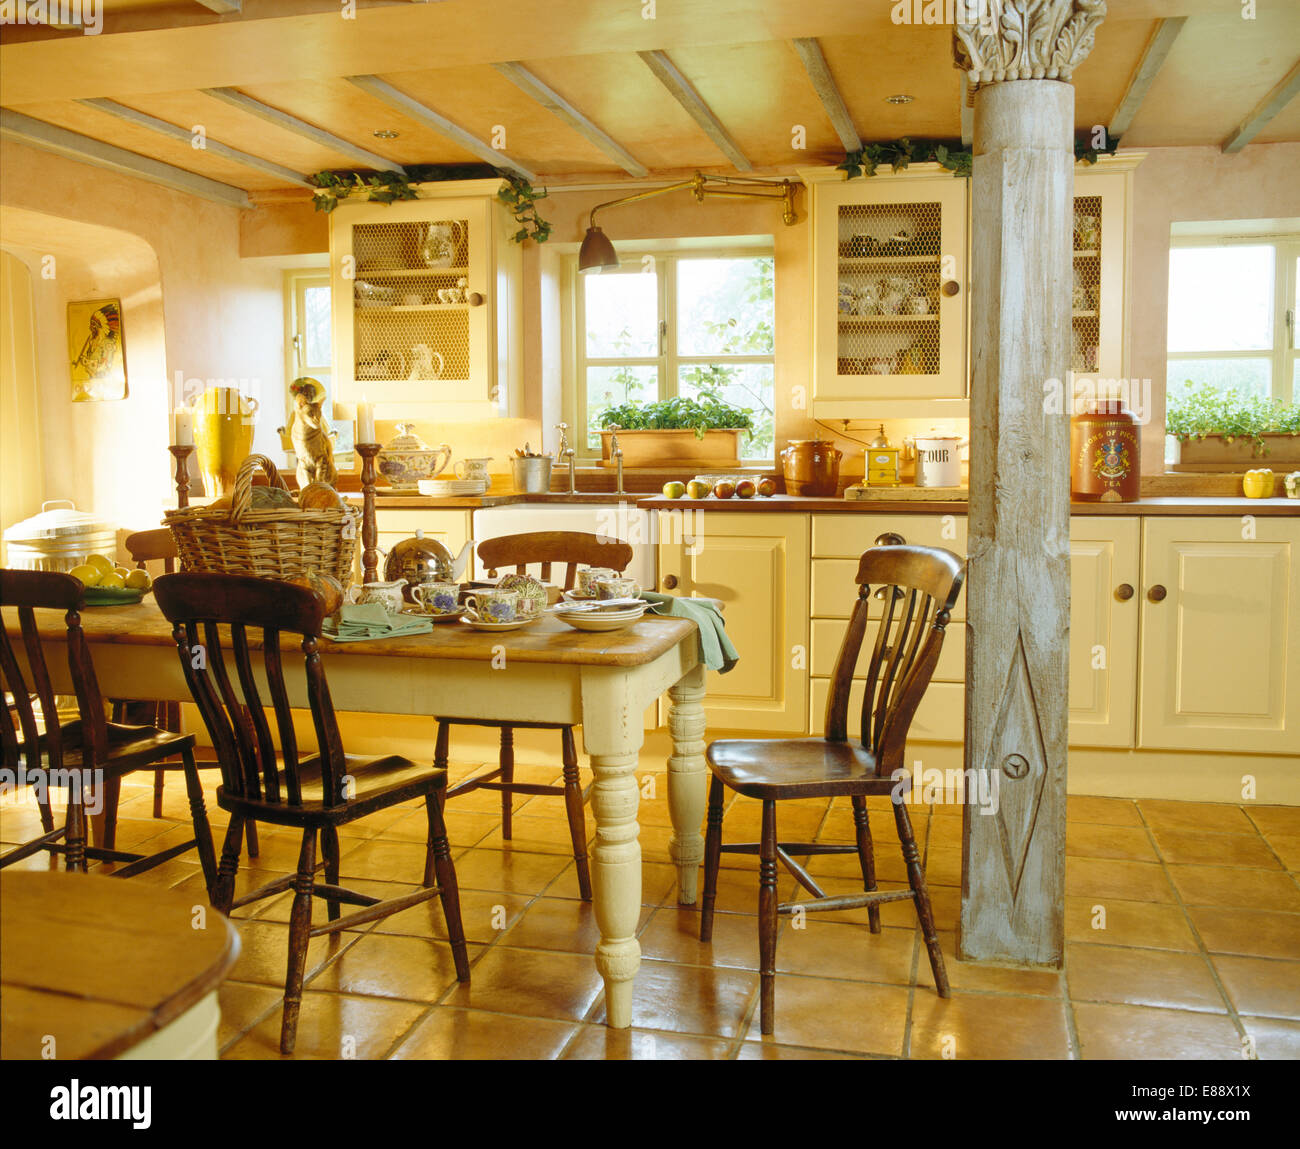 old wooden chairs at painted table in cottage kitchen with classical E88X1X